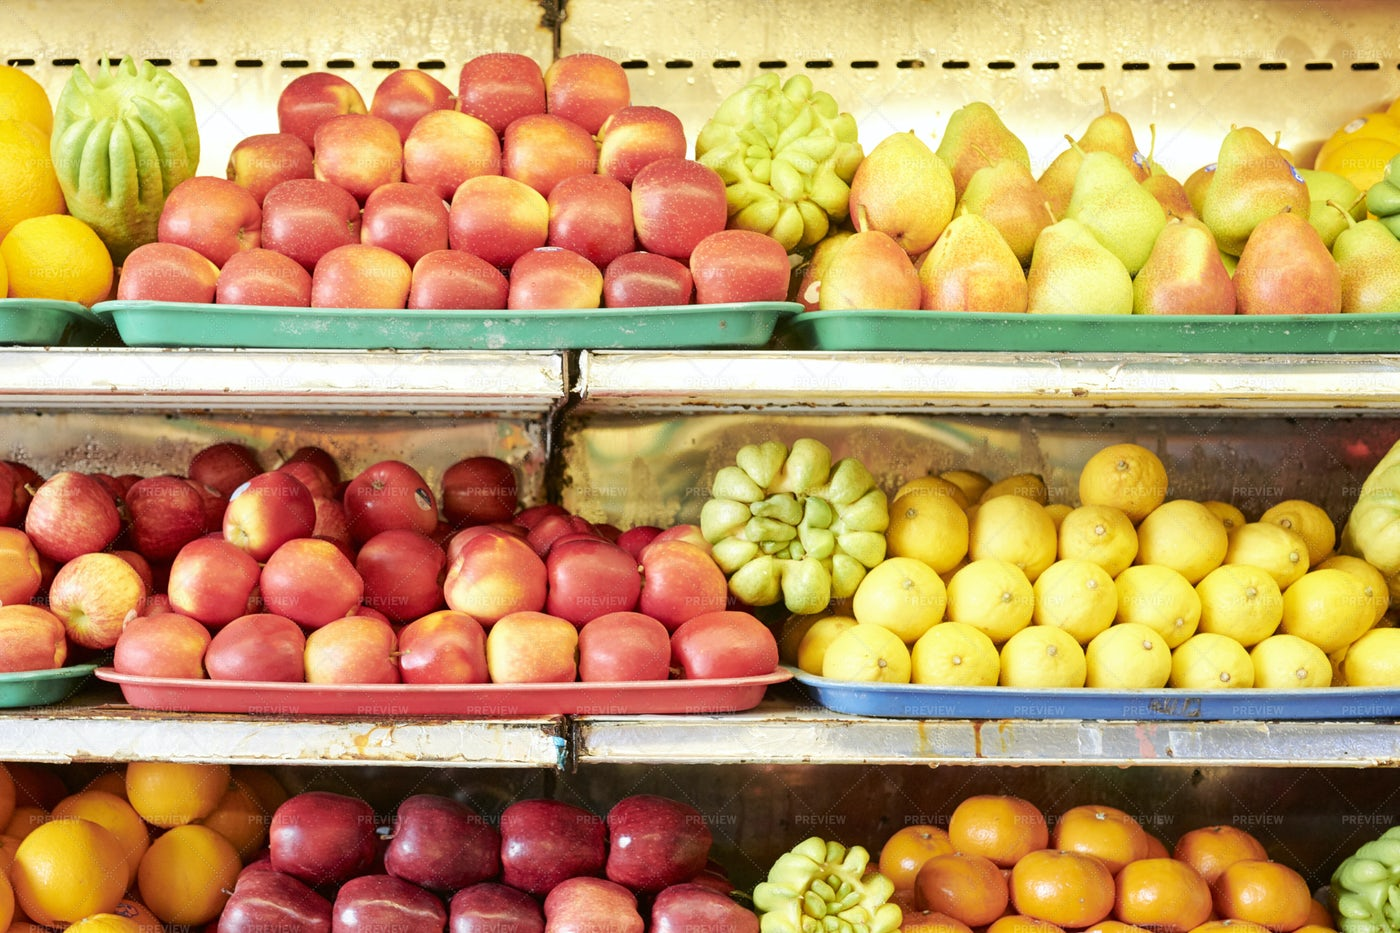 Fruits On Shelves In Supermarket: Stock Photos